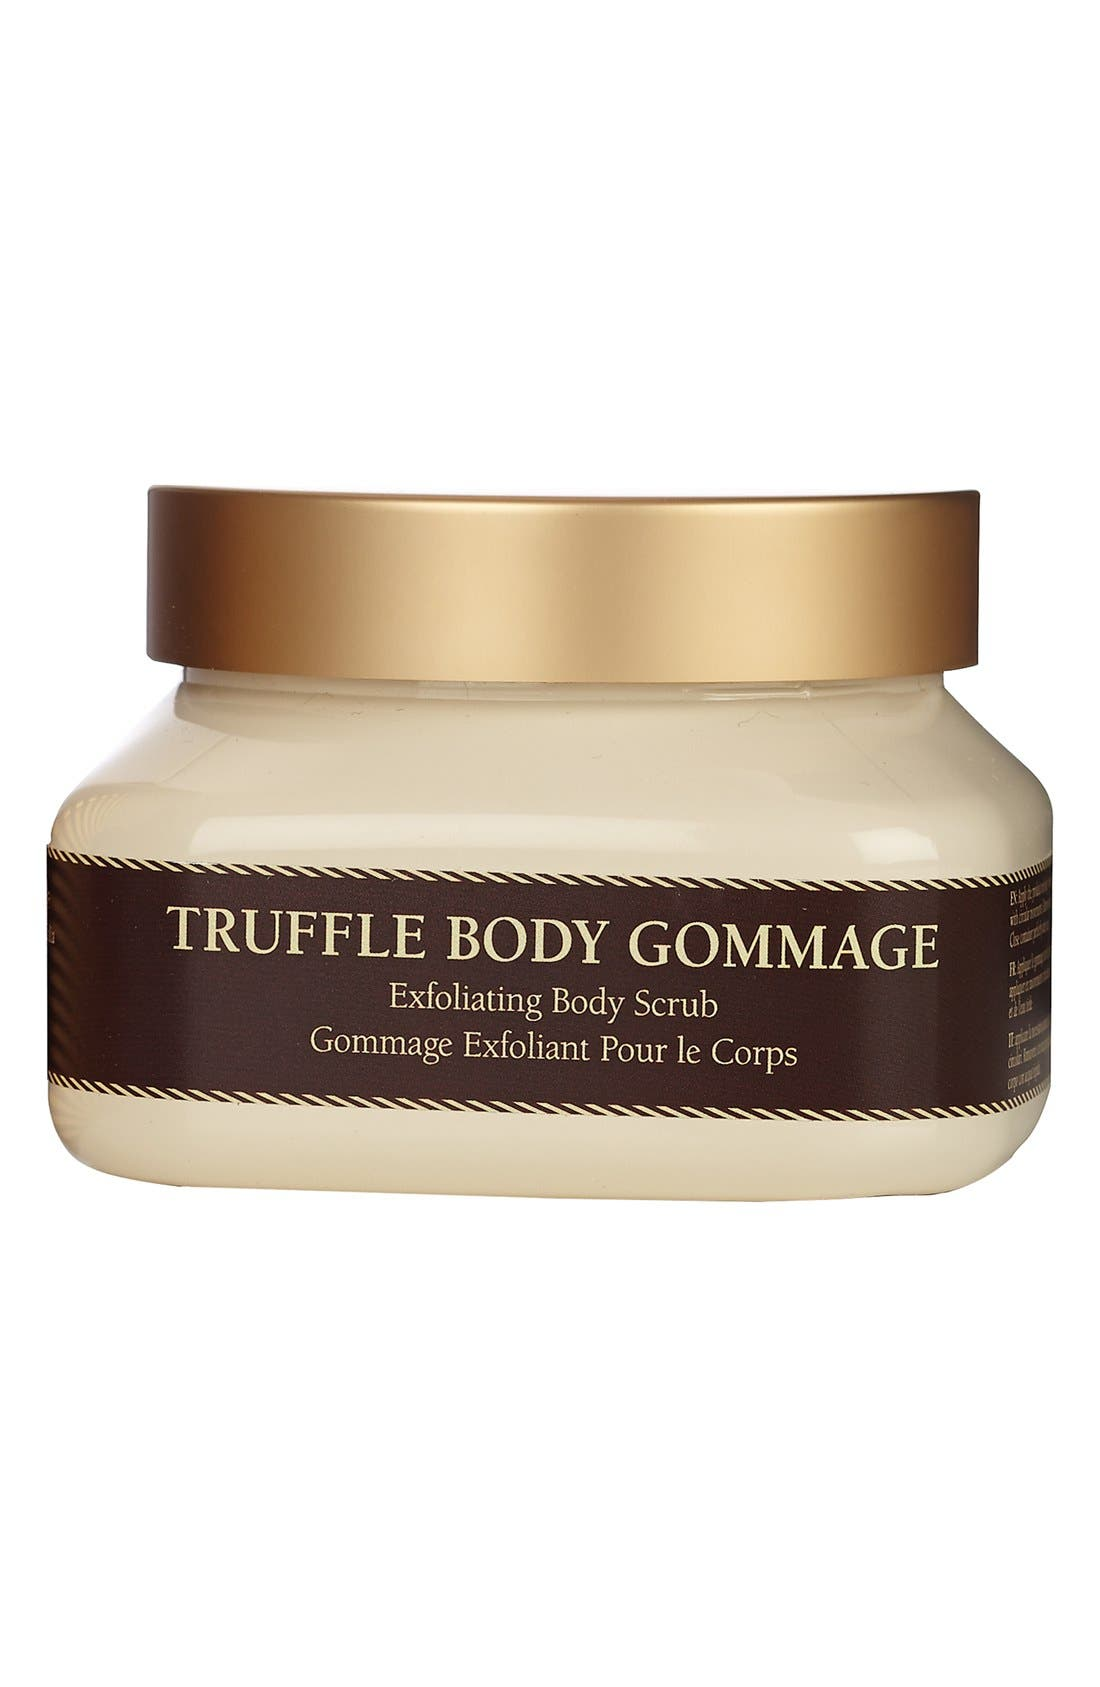 SKIN&CO Truffle Body Gommage,                             Main thumbnail 1, color,                             000